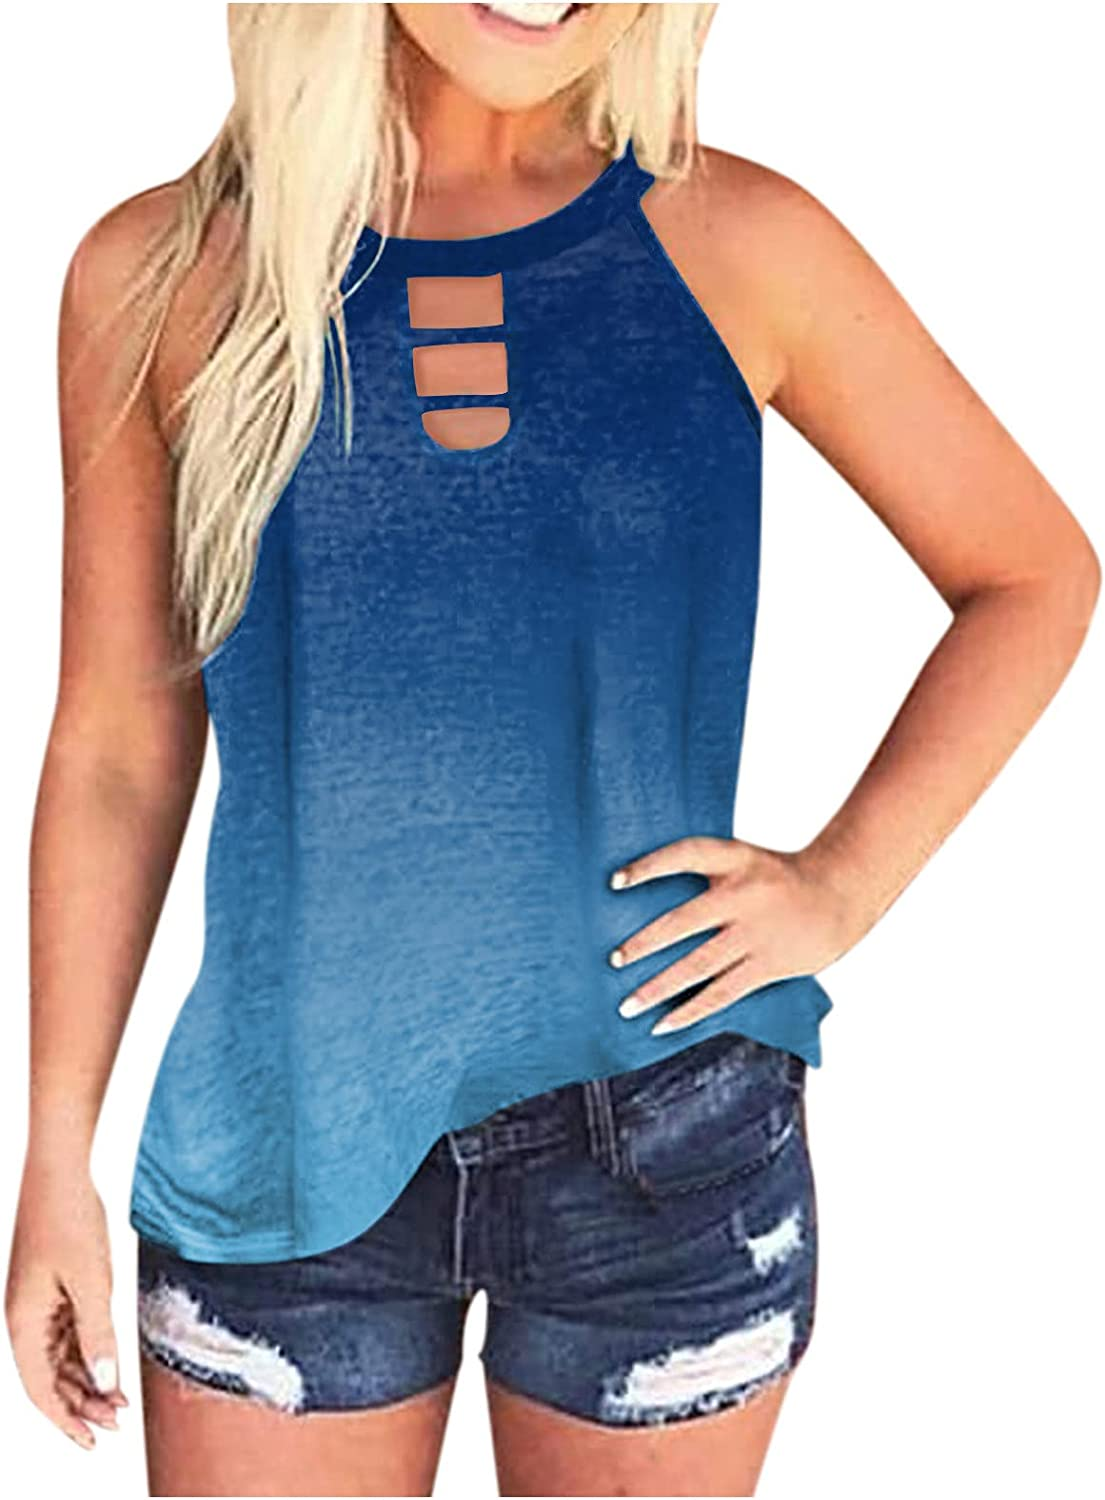 Eduavar Summer Tank Tops for Women,Womens Fashion Gardient Printed Sleeveless Vest Tank Tops Casual Loose Shirts Blouses